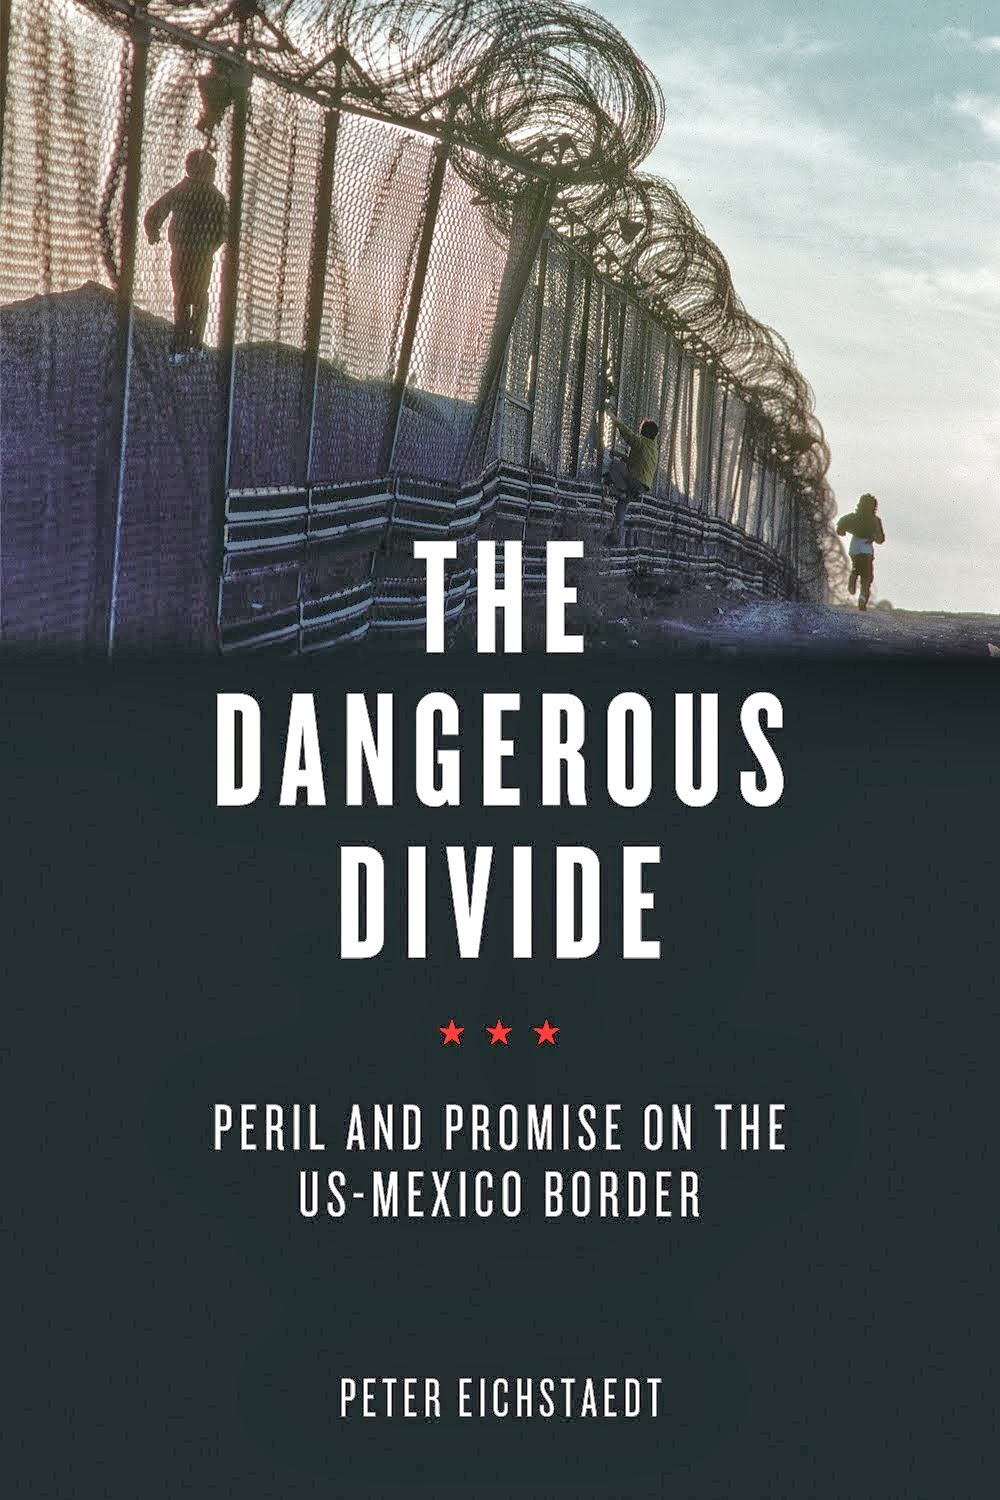 Winner of the 2015 International Latino Book Award